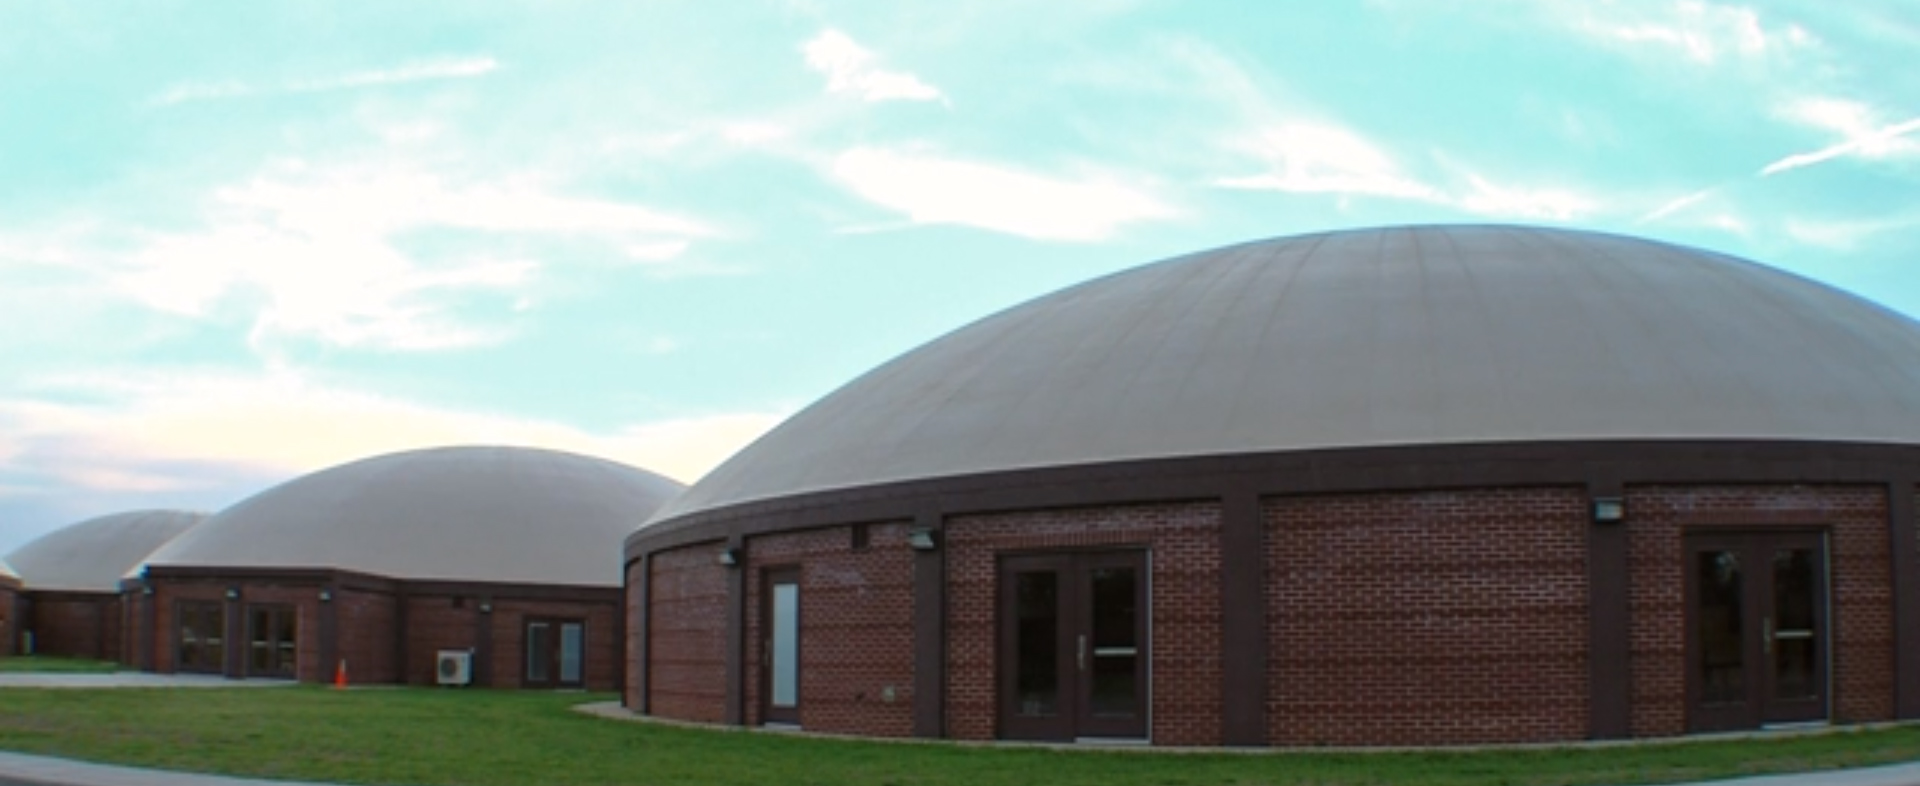 virtually indestructible utah architect applies thin shell dome